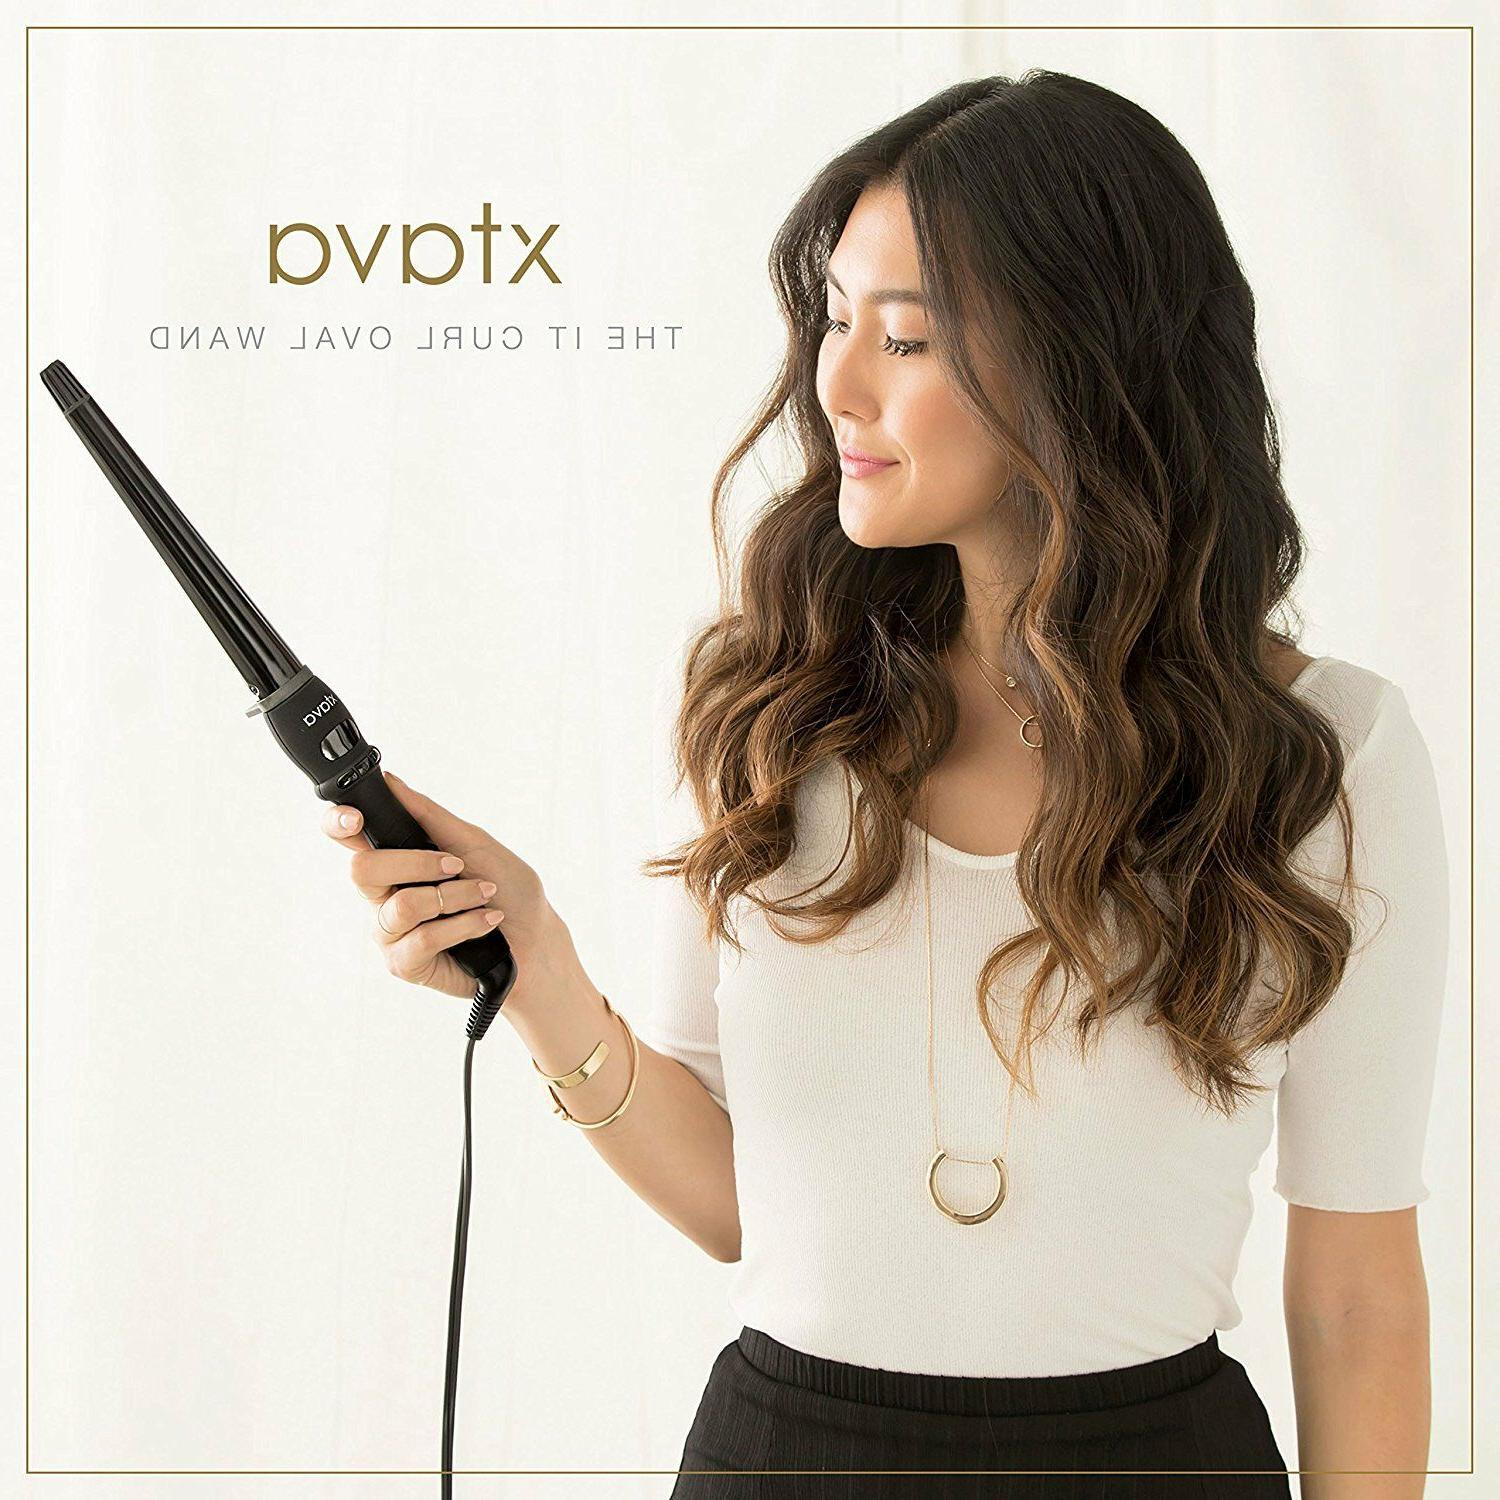 Xtava Wand Clipless Curling Wavy Hair